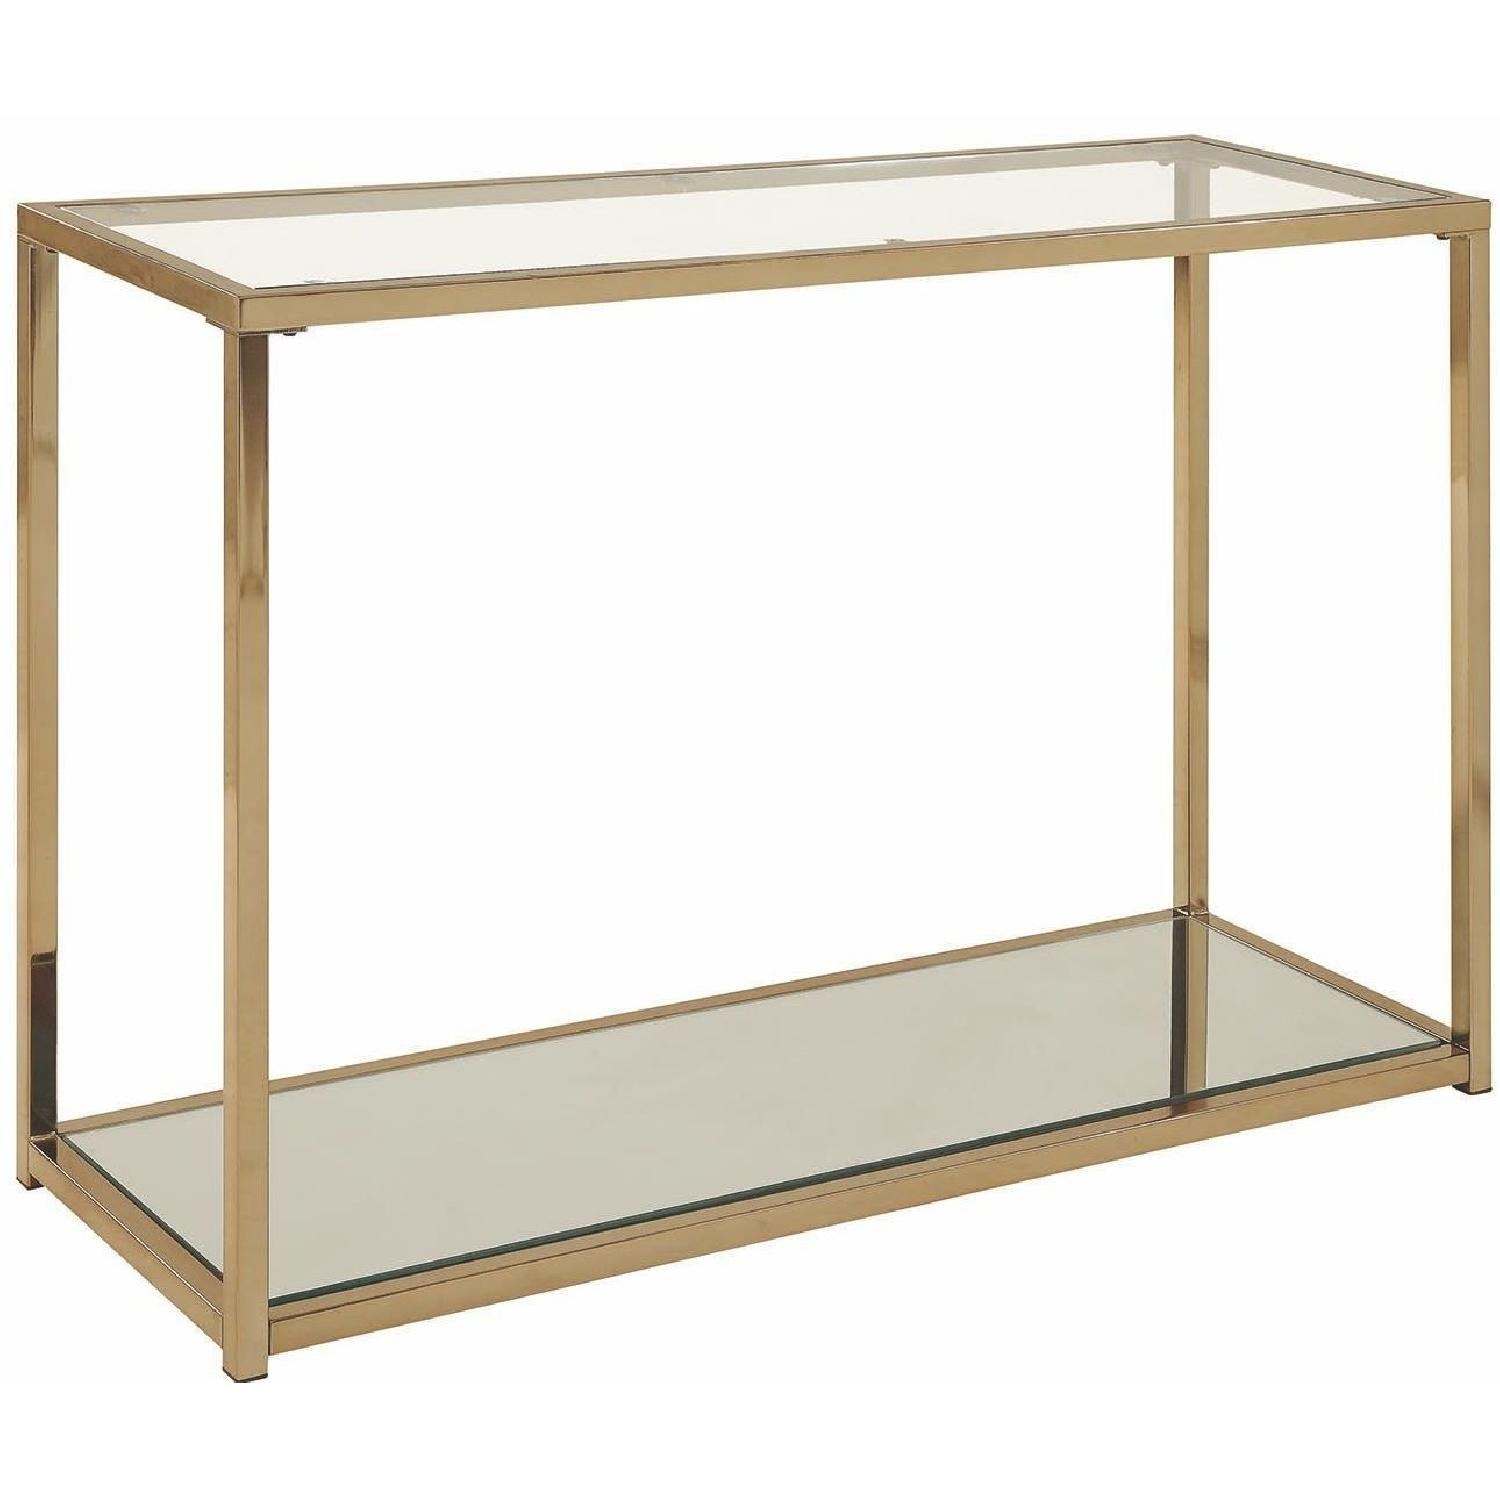 Modern Sofa Table w/ Chrome Frame,Glass Top & Mirror Shelf